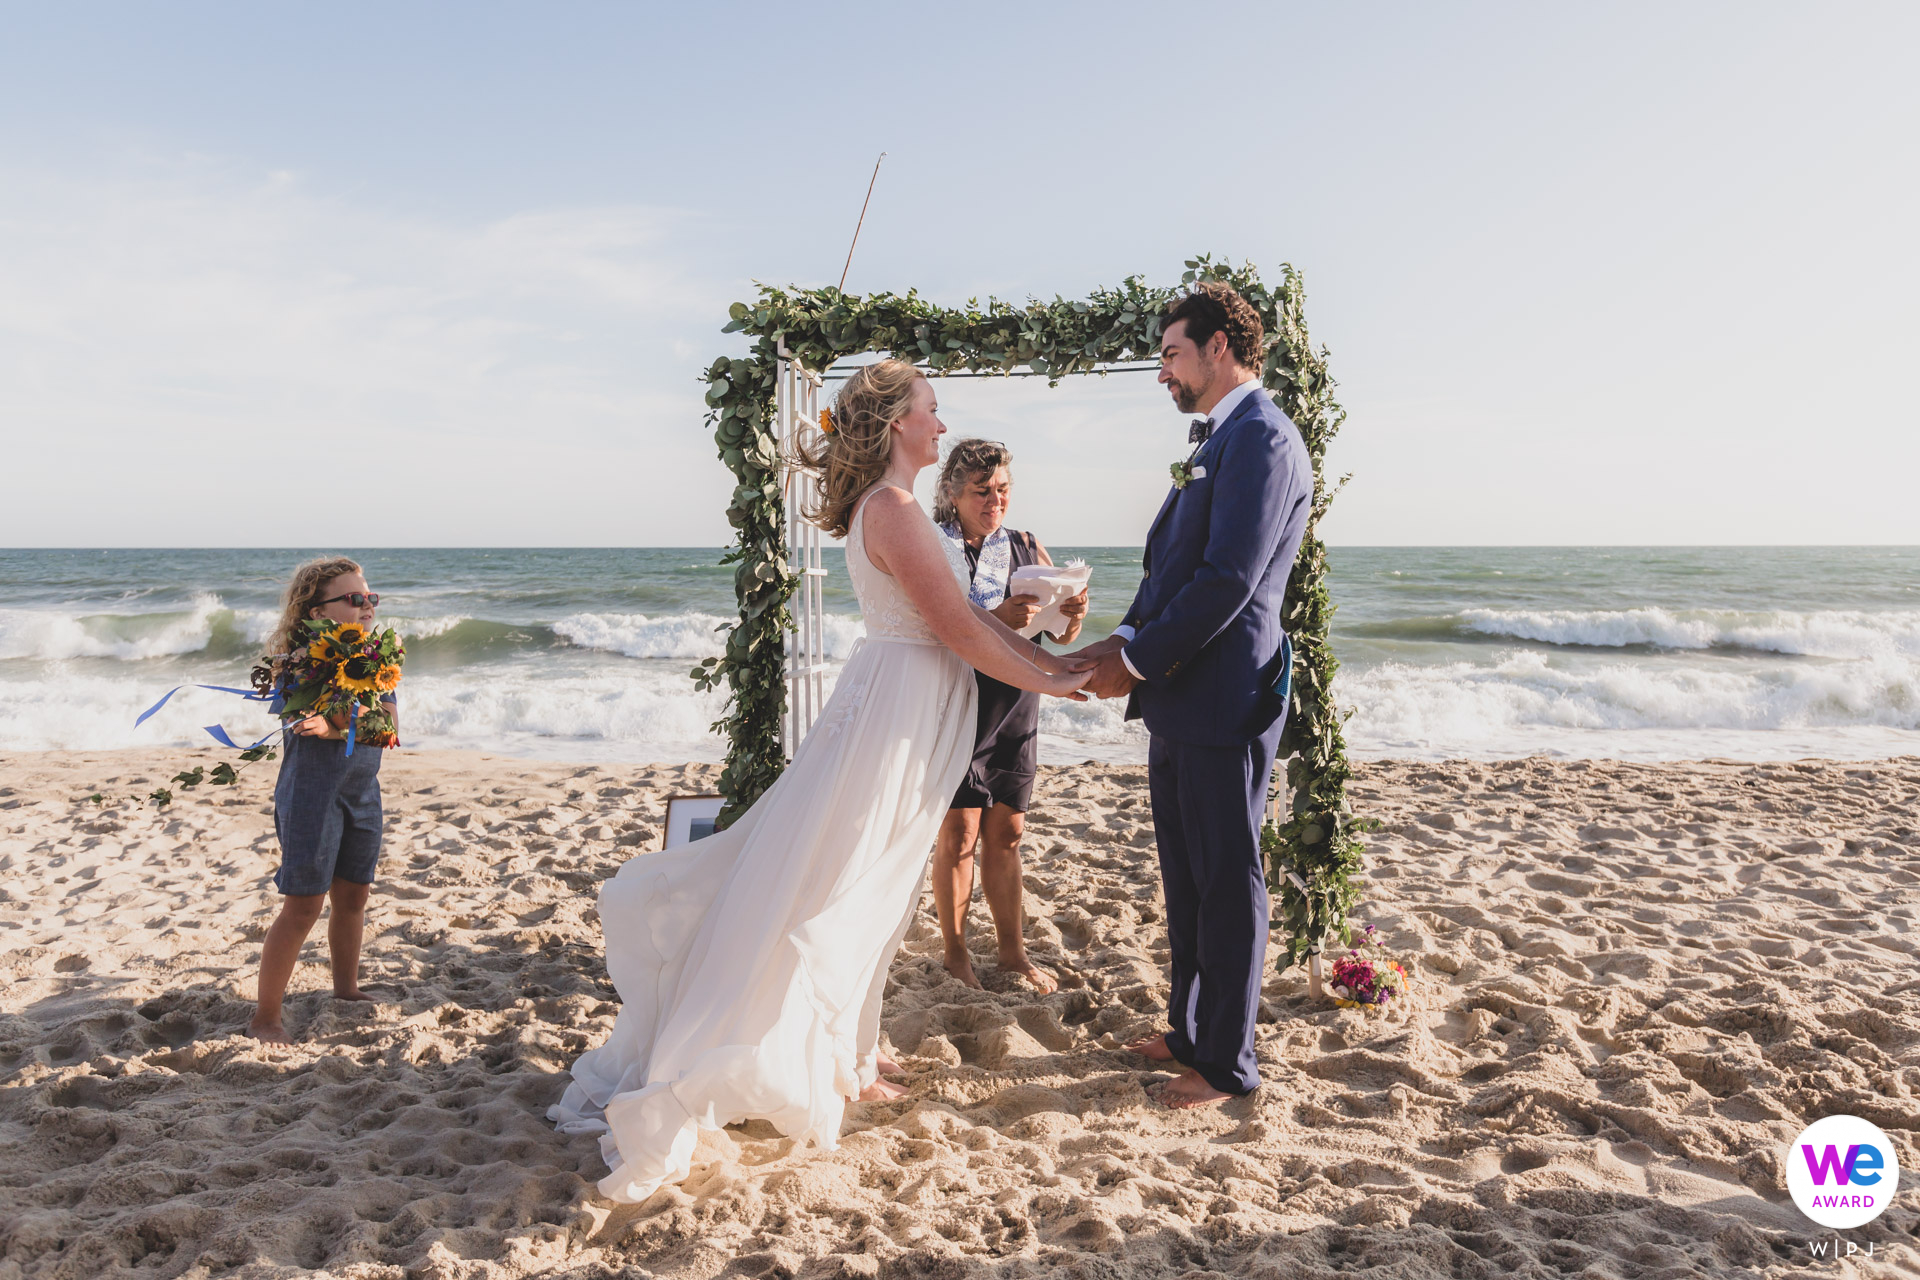 Ladies Beach, Nantucket Island, MA Elopement Photographer | The couple exchanged vows at Ladies Beach with waves crashing on the shore